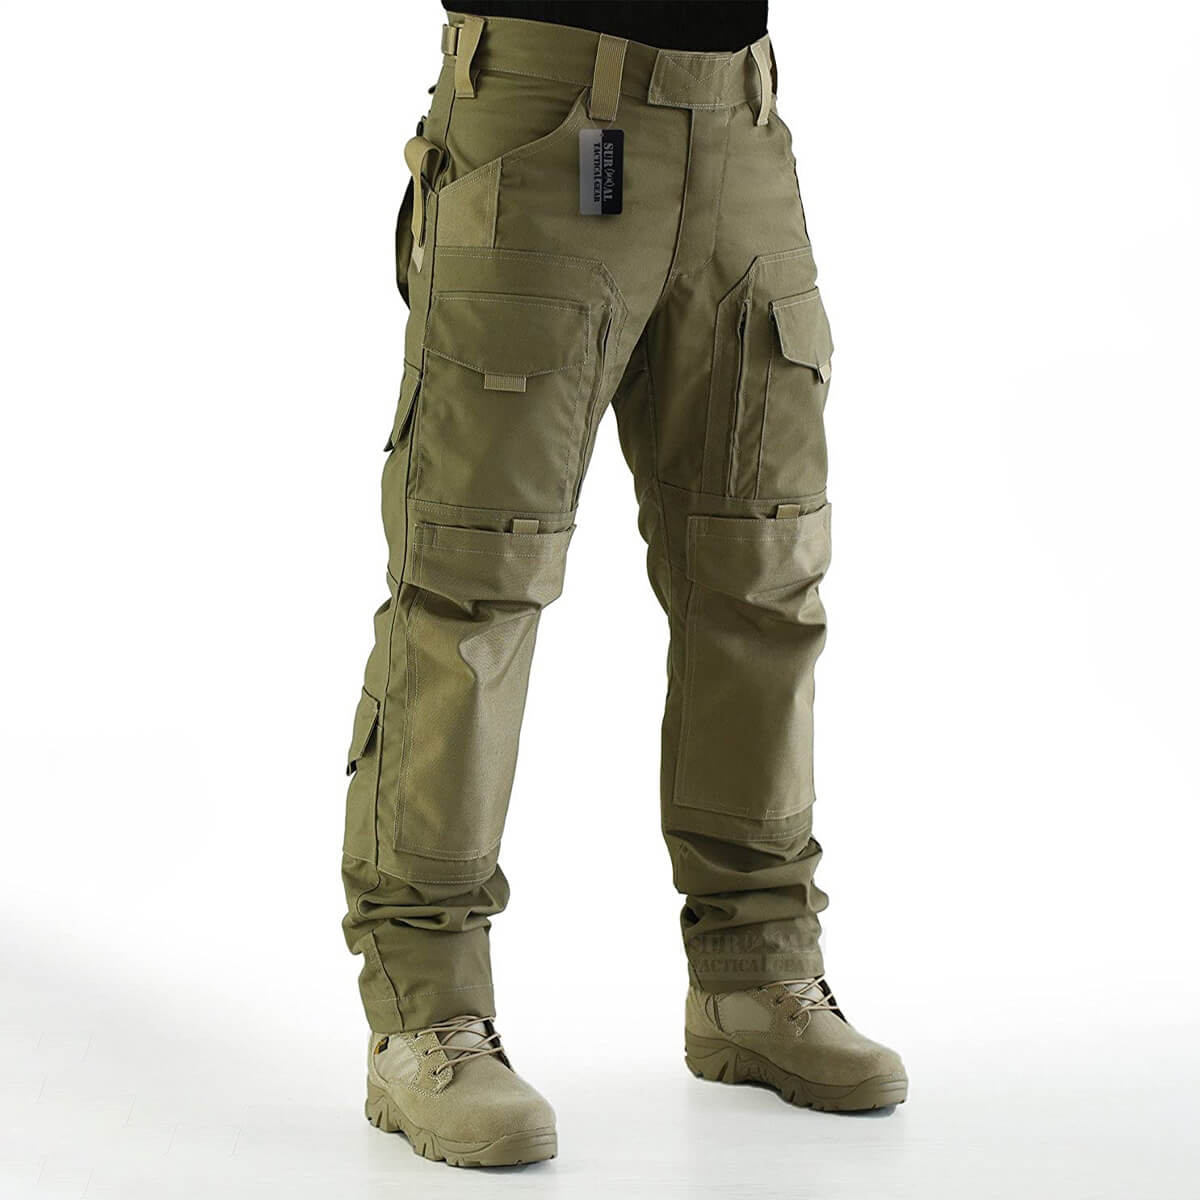 ZAPT Tactical Molle Ripstop Combat Trousers Army